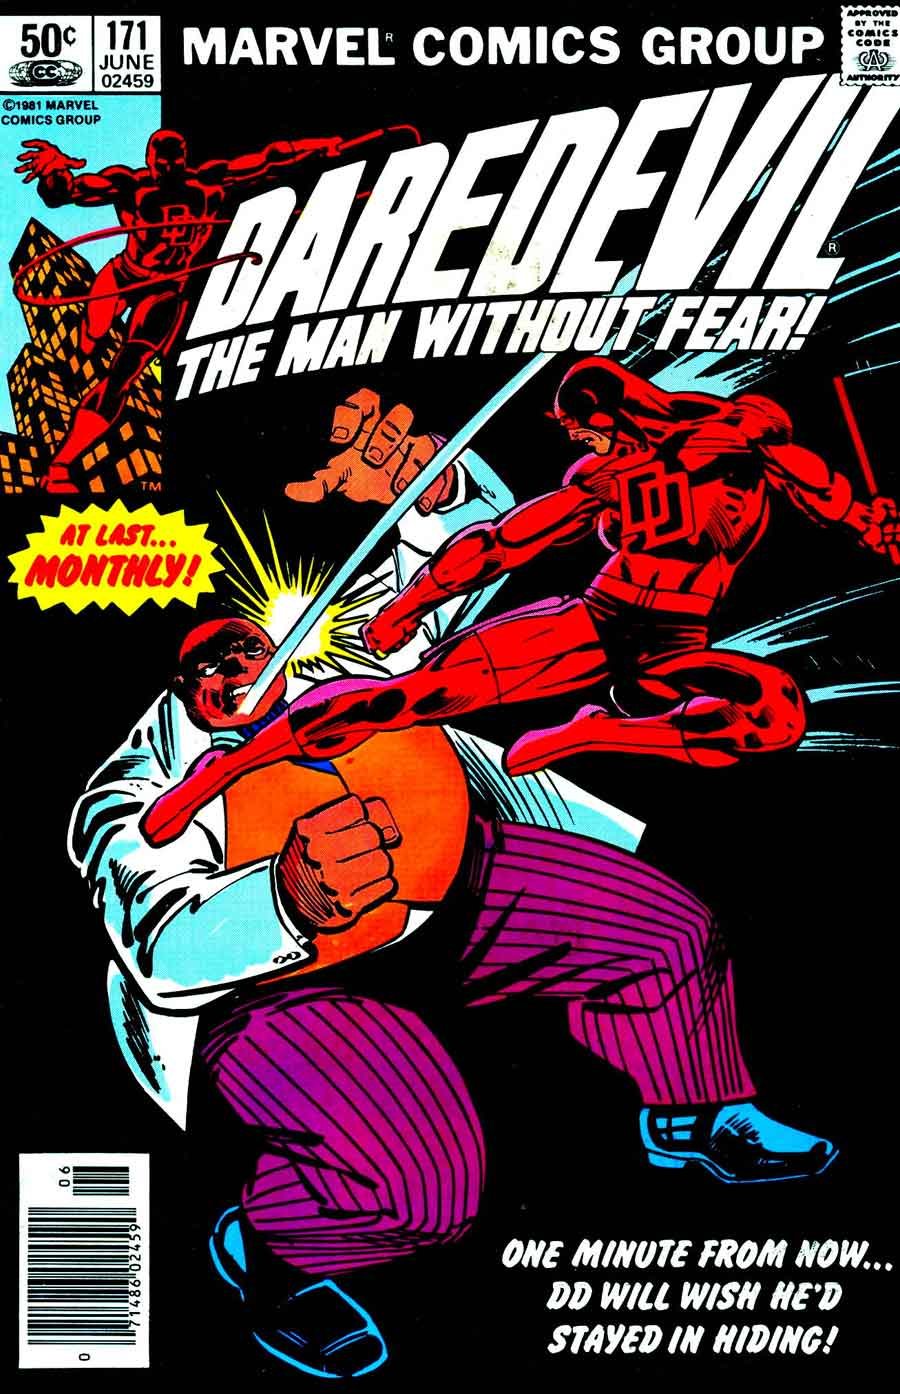 Daredevil v1 #171 kingpin marvel comic book cover art by Frank Miller